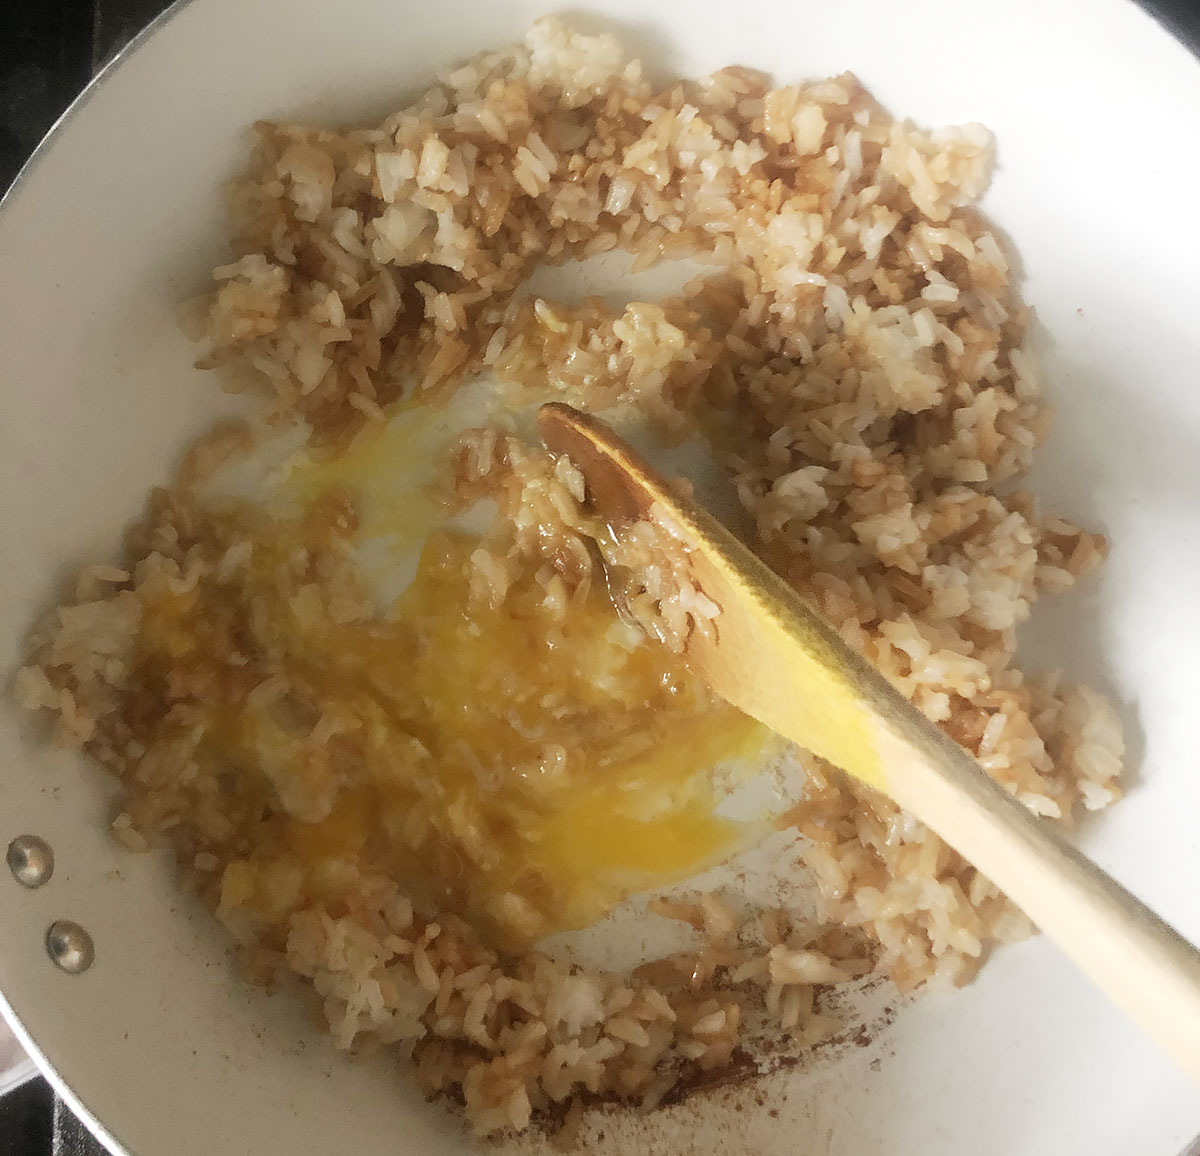 stirring an egg into fried rice